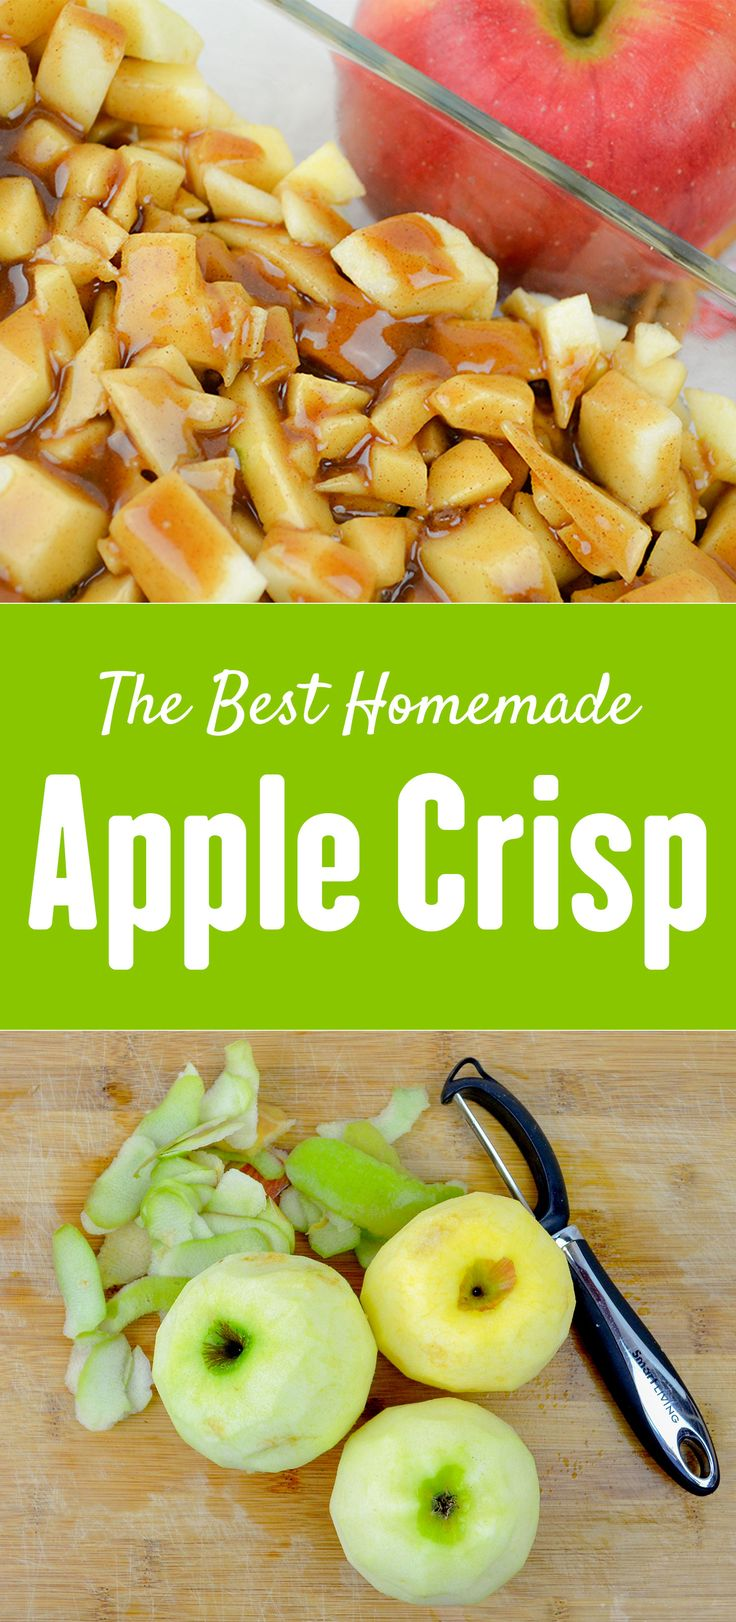 THE BEST homemade apple crisp! I think the secret it the splash of lemon and the bursts of caramel! They should call it Caramel Apple Crisp! This is my favorite apple recipe.